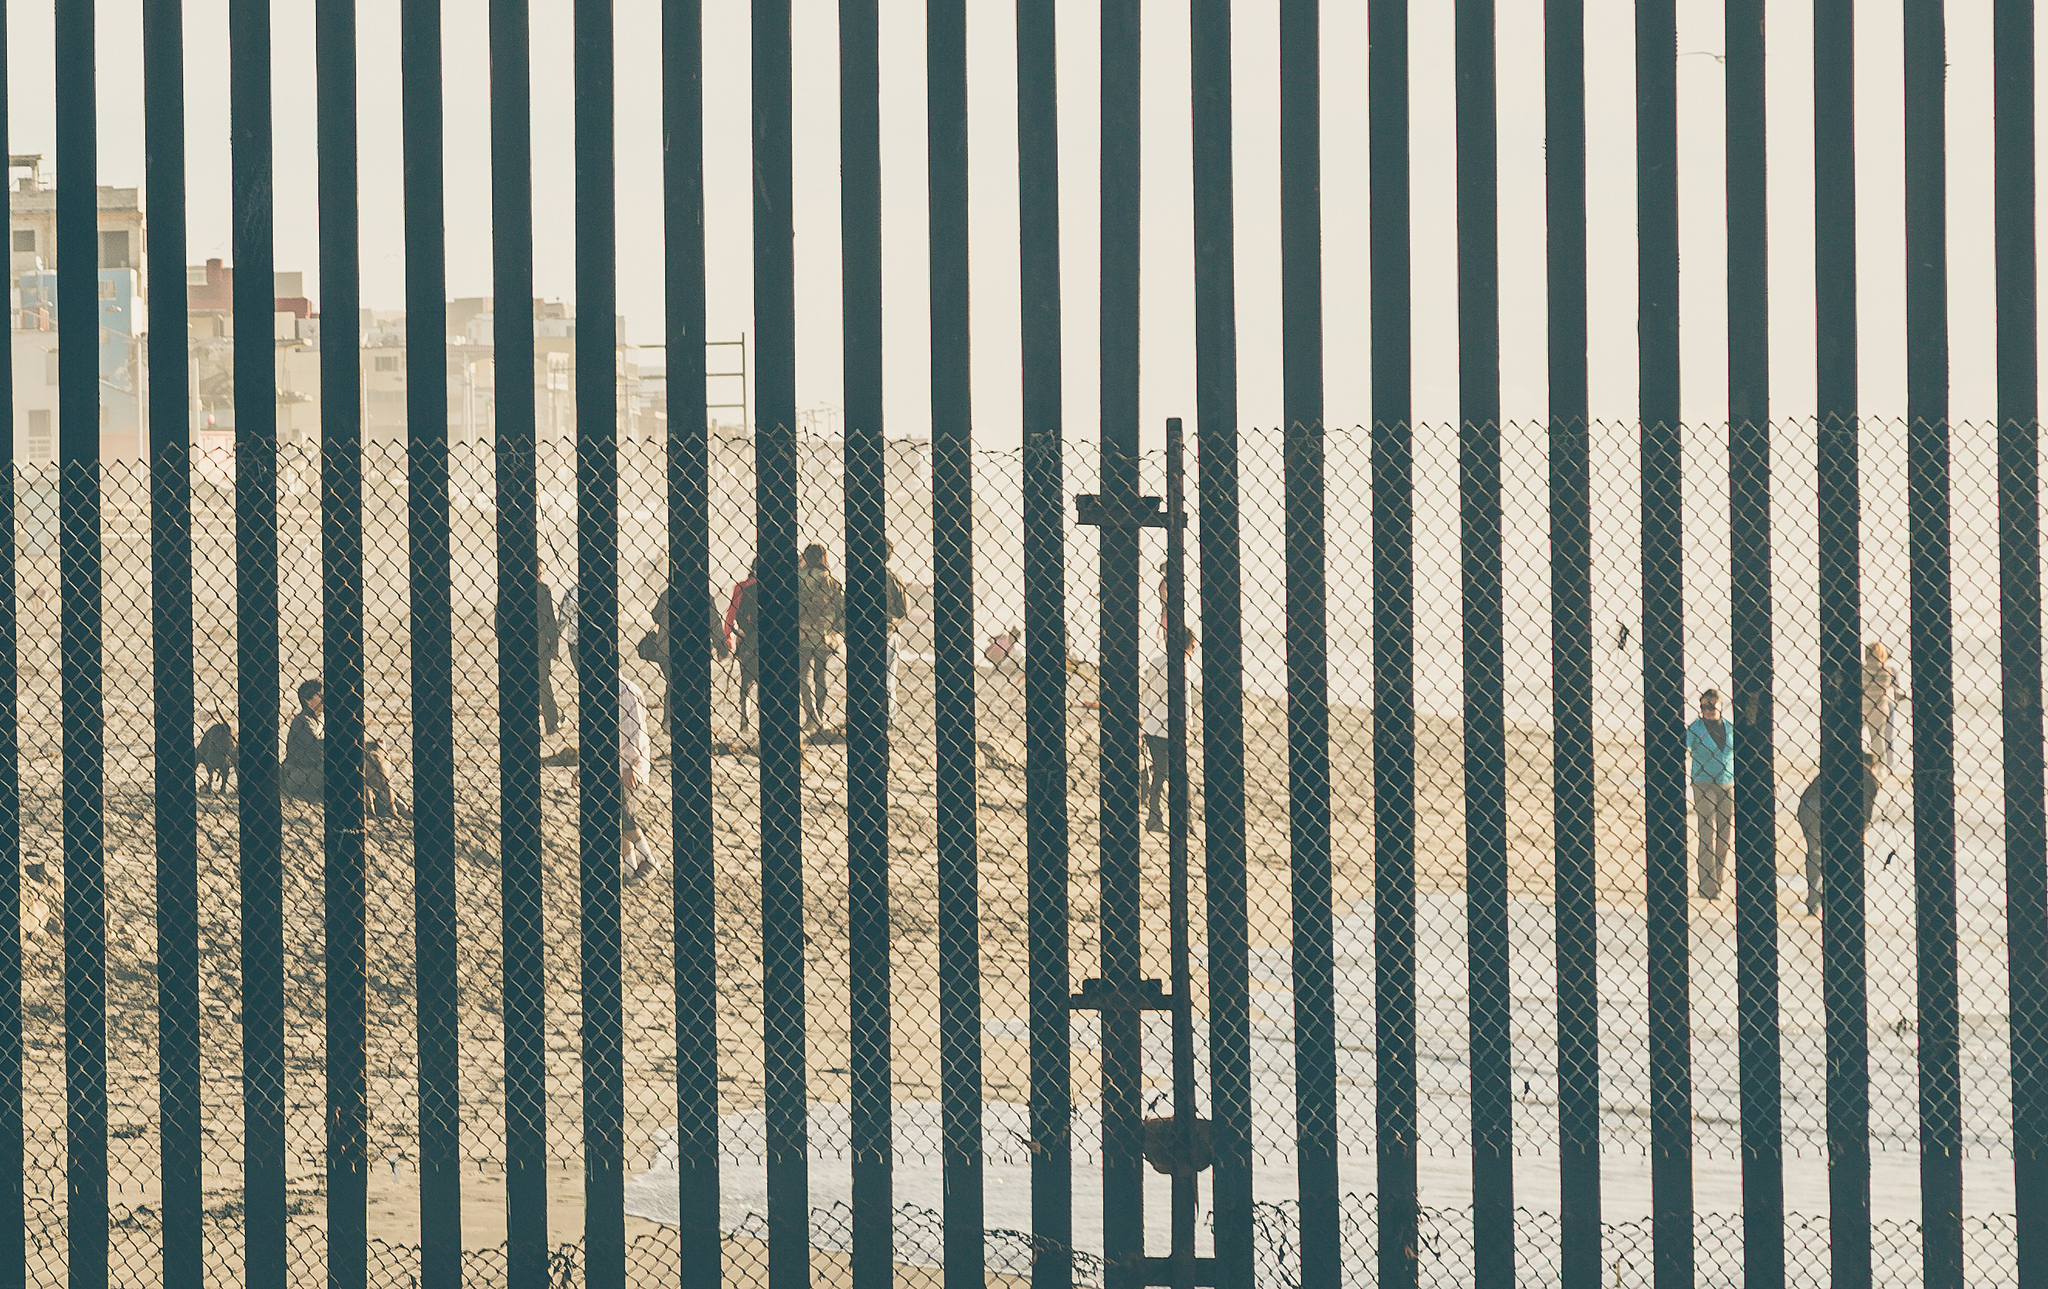 Trump Wants $1.6 Billion for the Border Wall. That Covers Just 74 Miles.